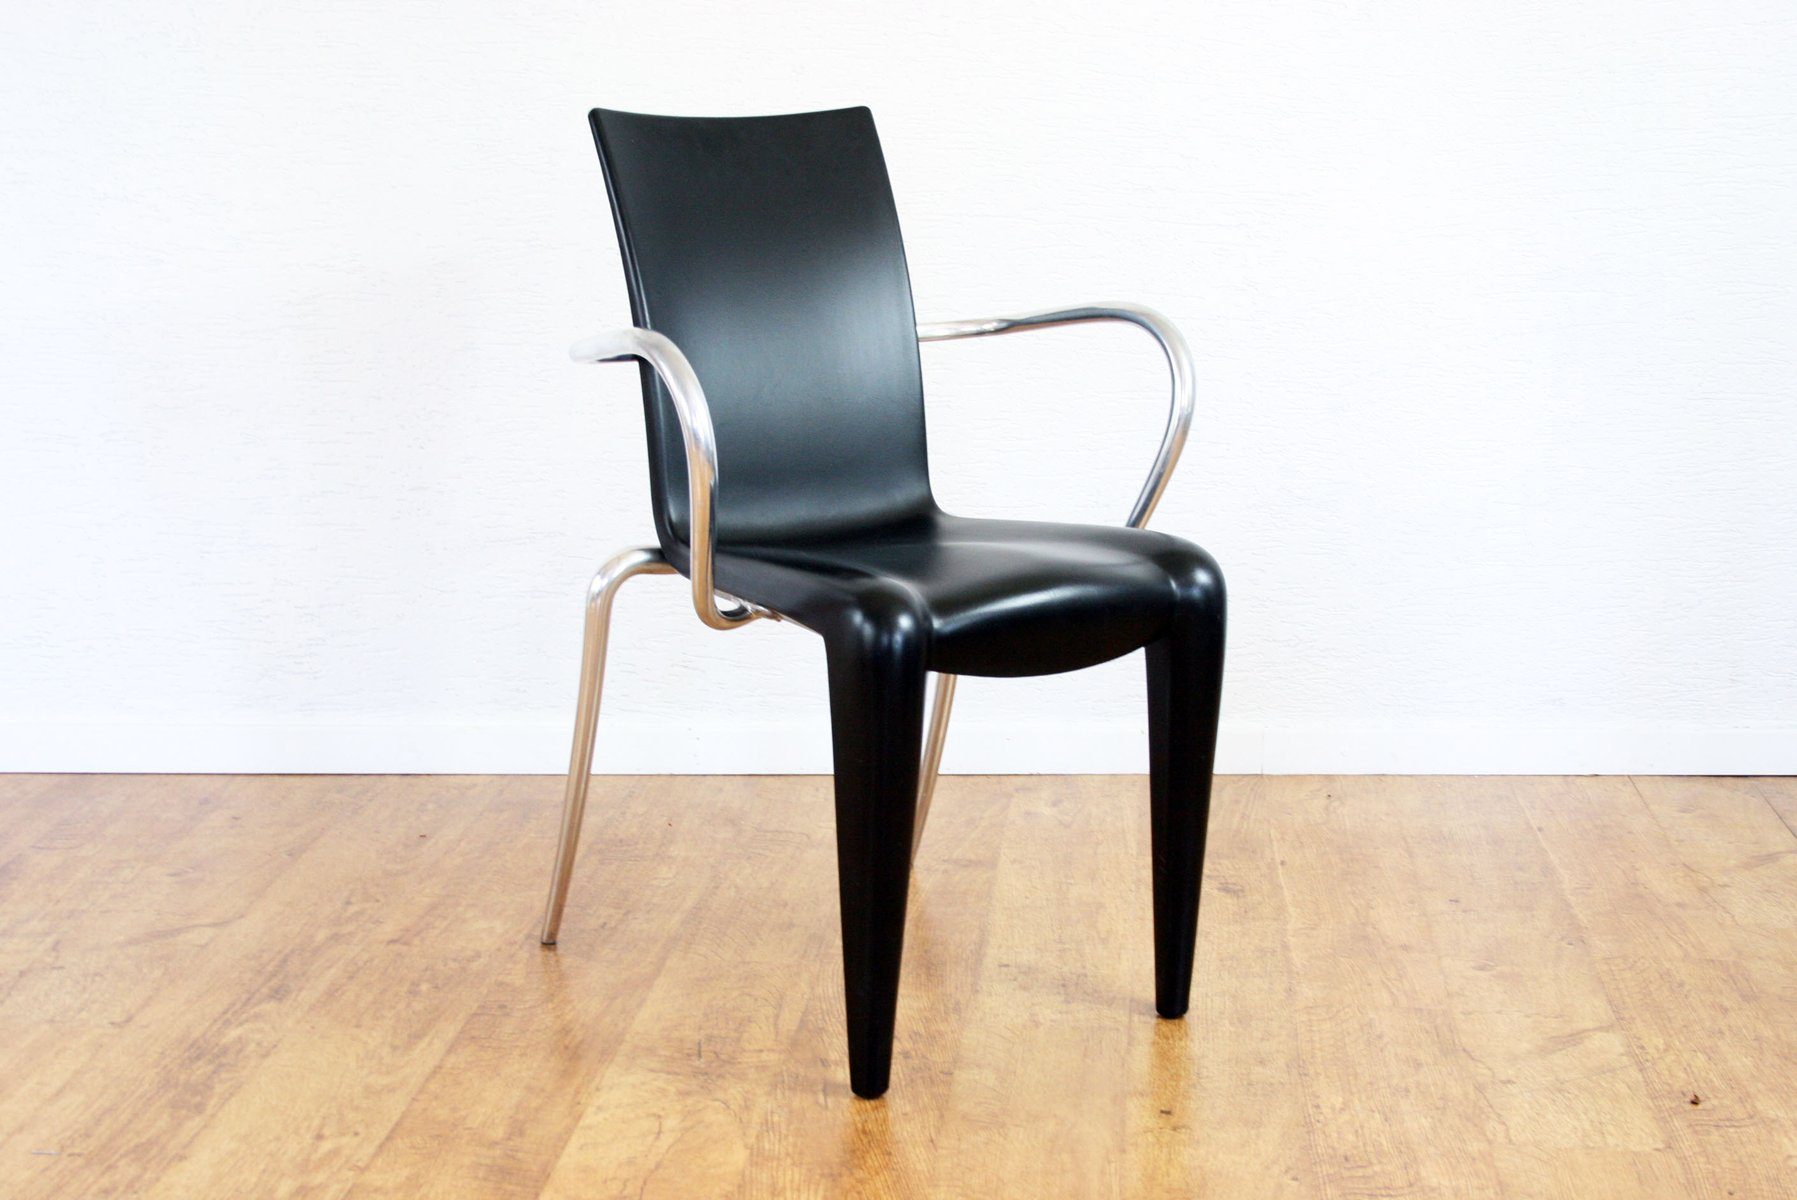 louis xx armchair by philippe starck for vitra 1992 for sale at pamono. Black Bedroom Furniture Sets. Home Design Ideas